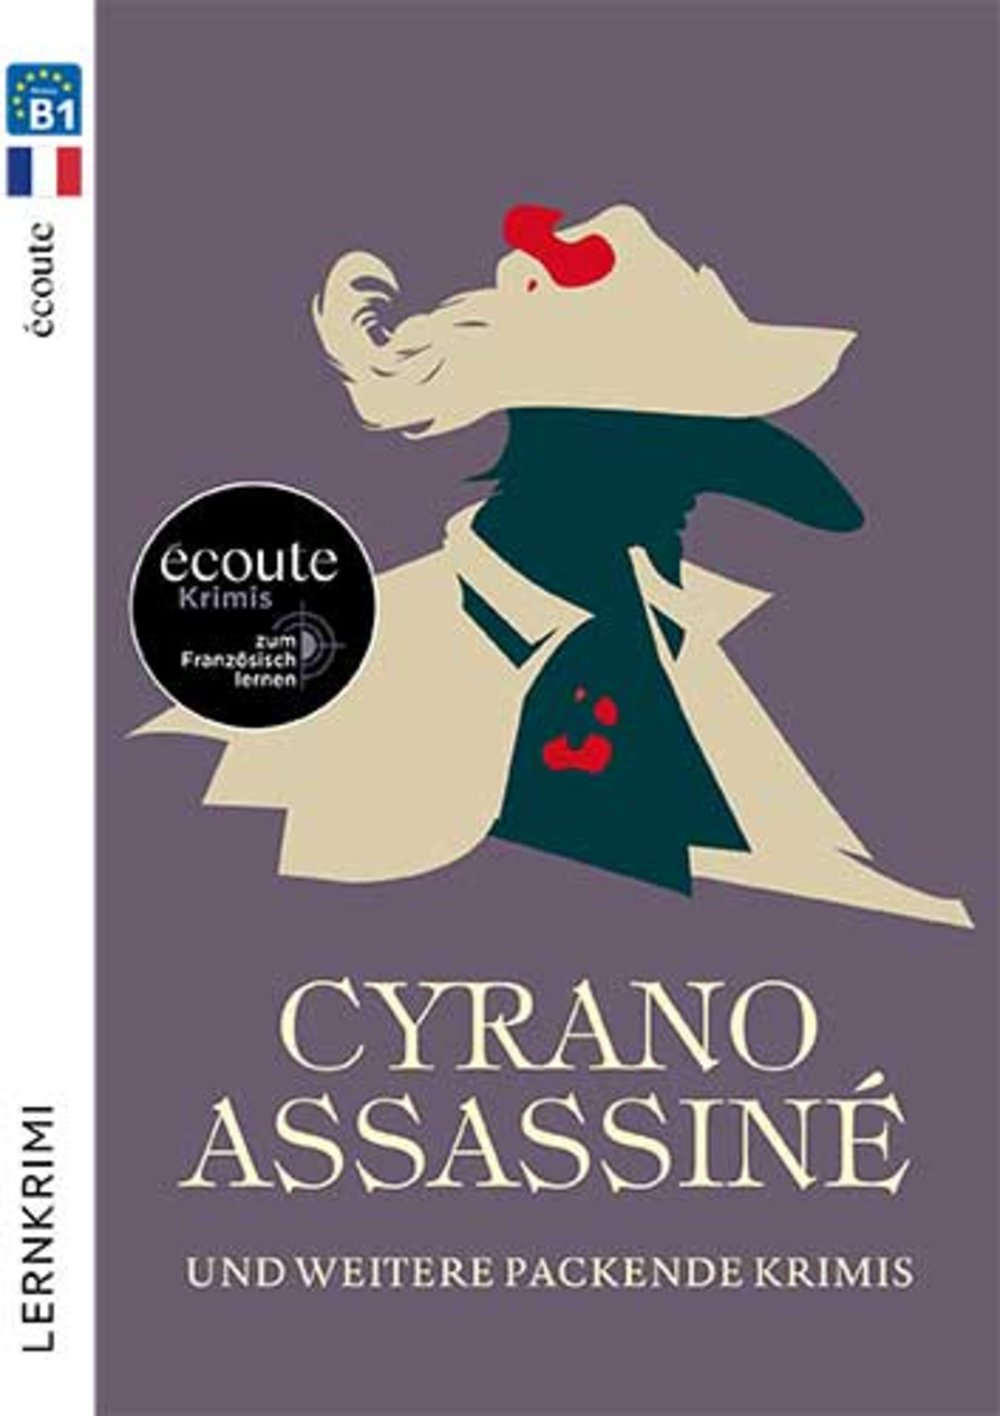 Écoute Lernkrimi - Cyrano assassiné